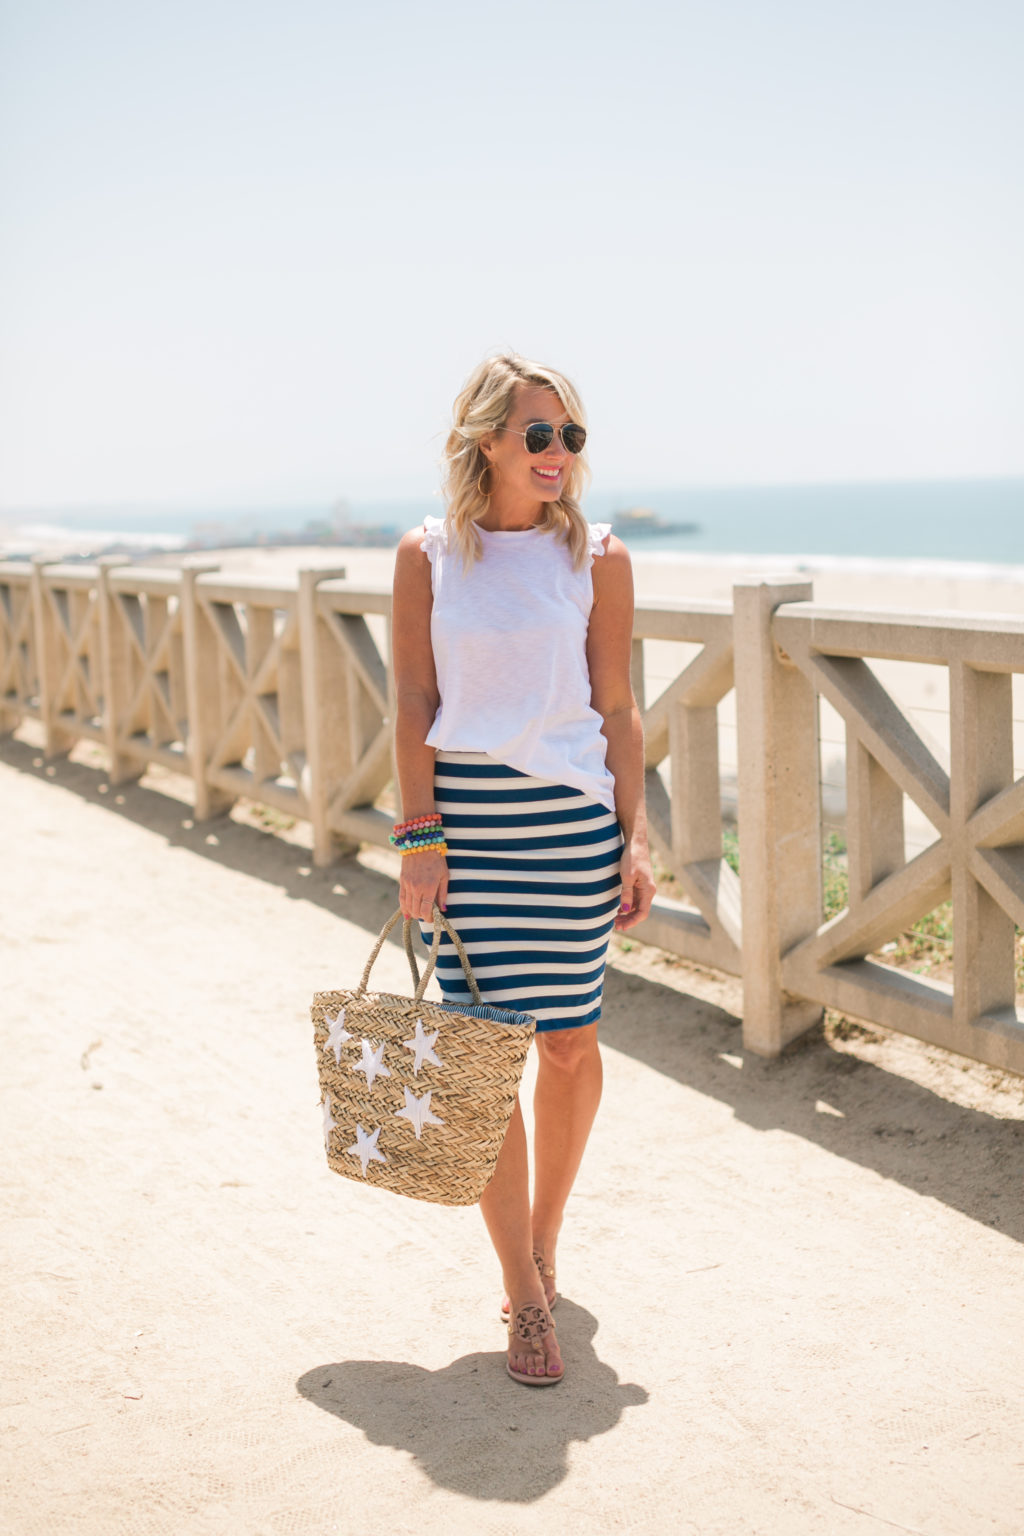 gibson hi sugarplum collection nordstrom bonita racerback ruffle tee in white and fornillo midi skirt in blue stripe